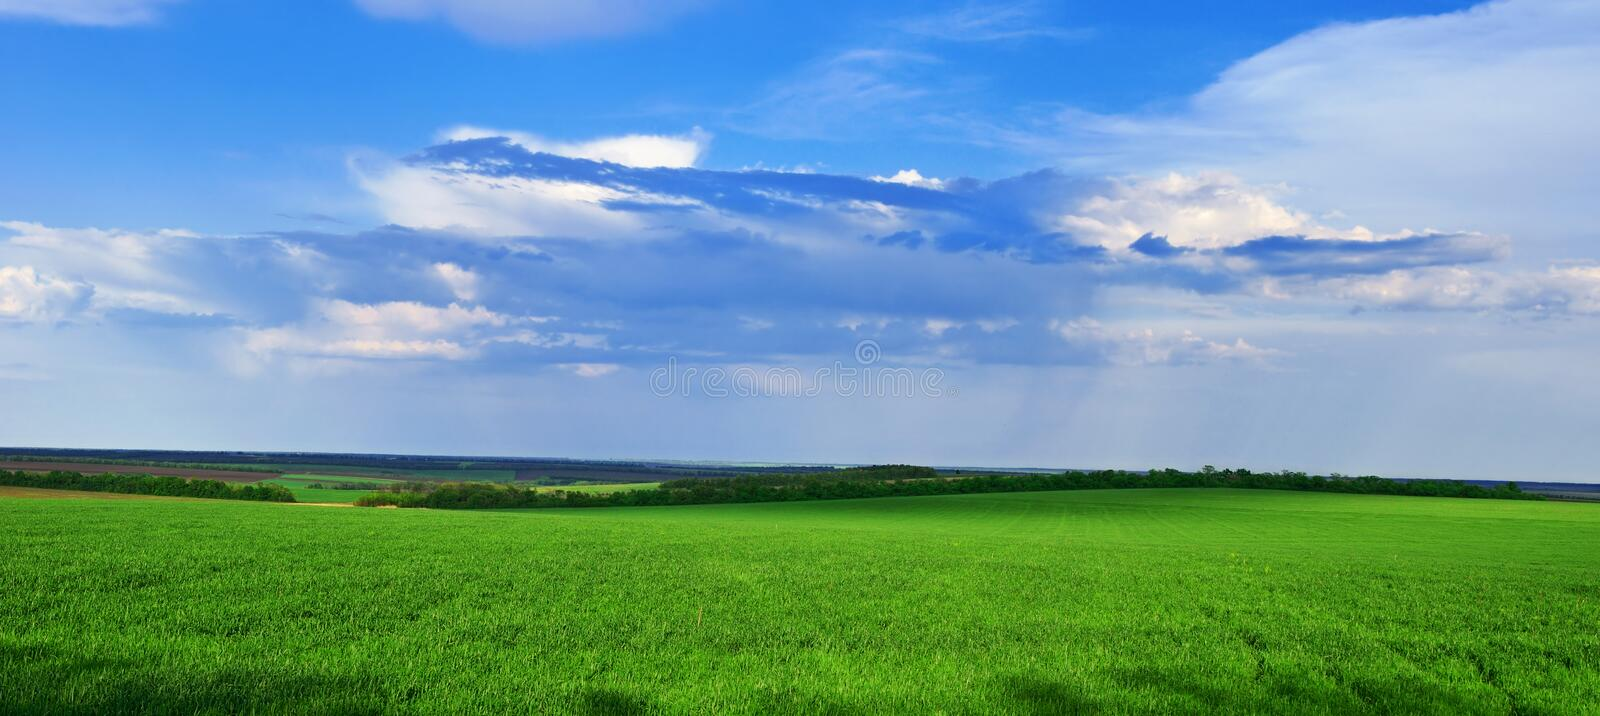 Download Green Grass Grows On The Field Stock Image - Image: 23774173